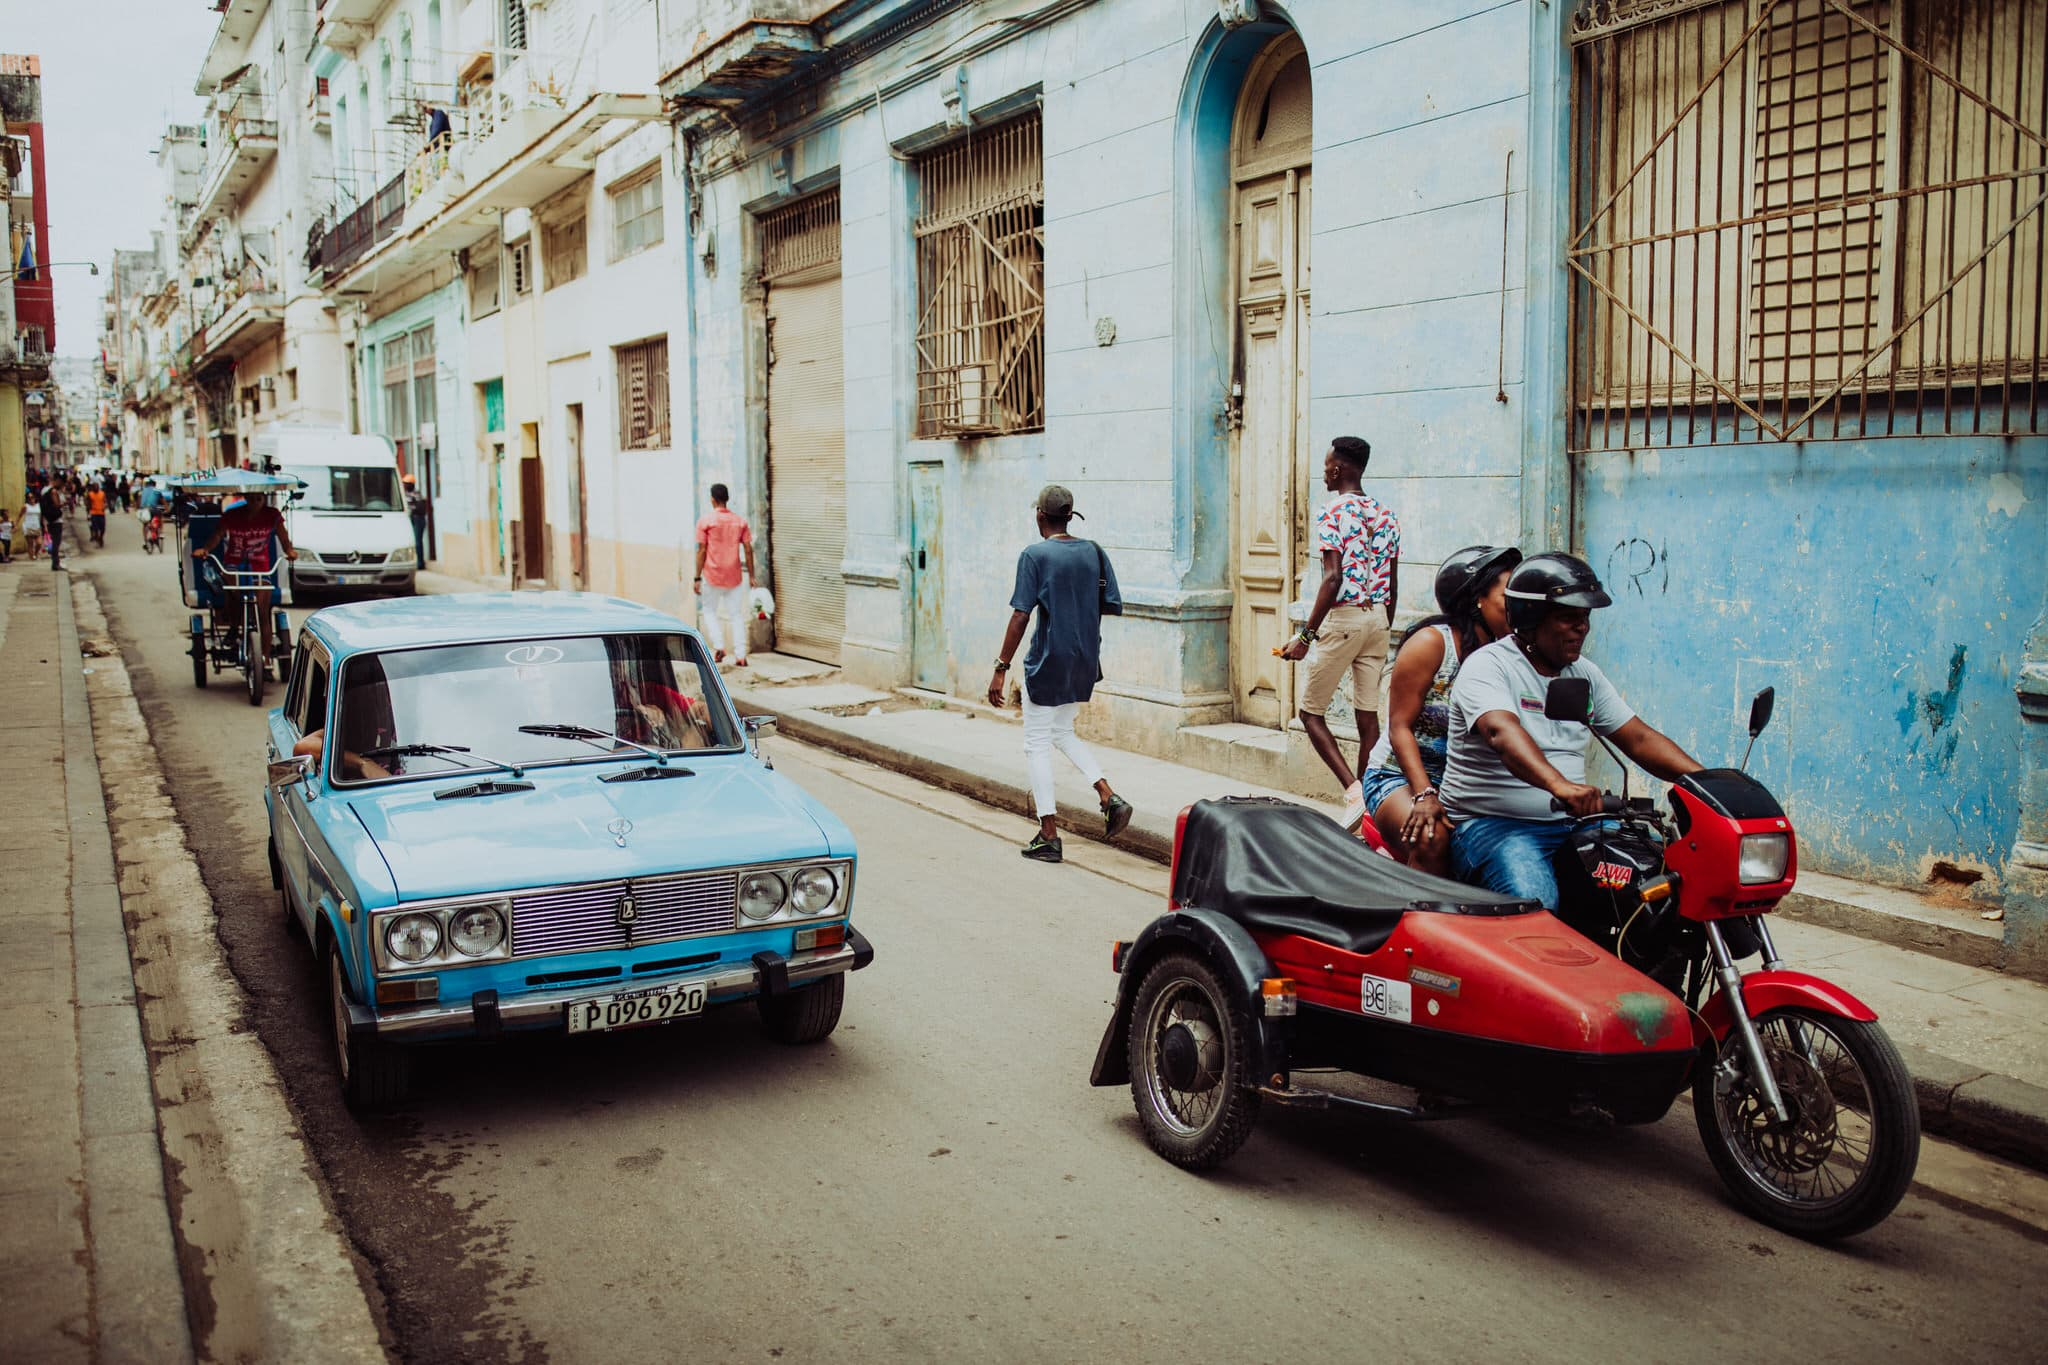 A blue Lada in Havana, one of the classic cars of cuba. Travel photographer Brent Calis.